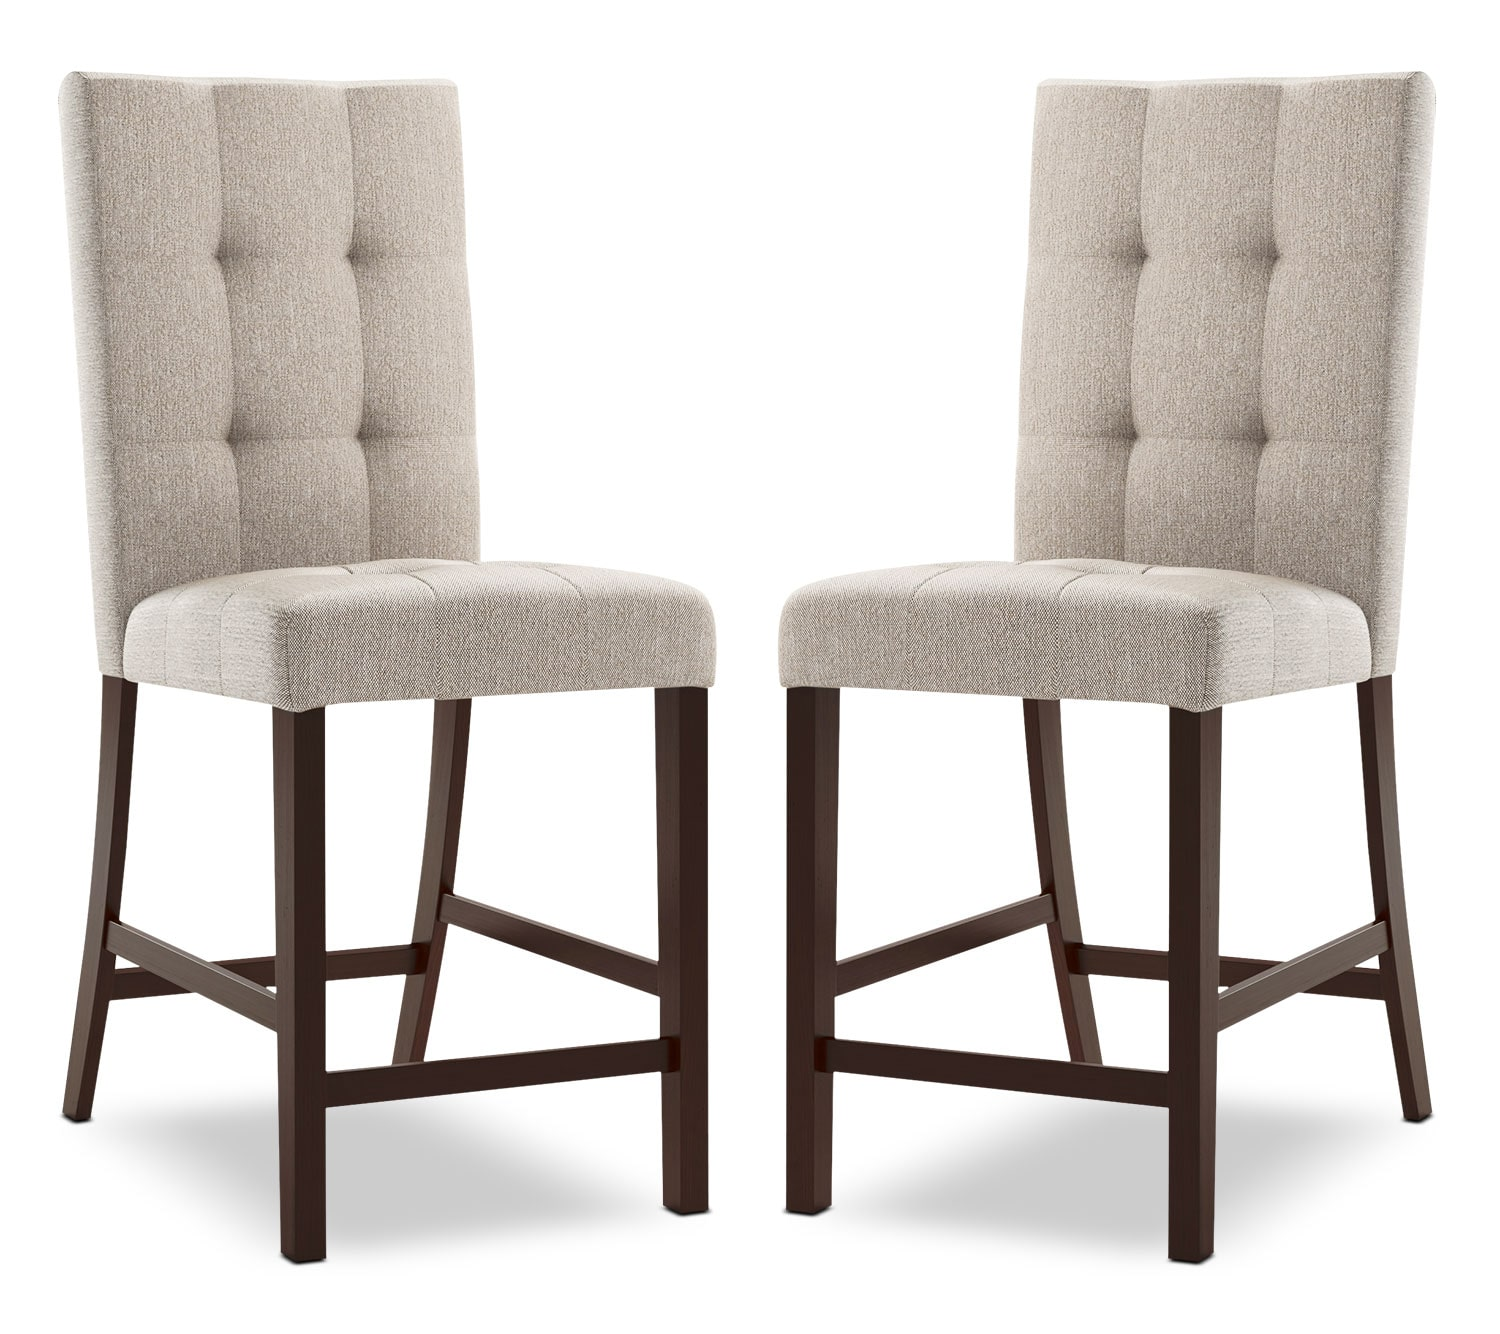 Bistro Square-Tufted Counter-Height Dining Chair, Set of 2 – Platinum